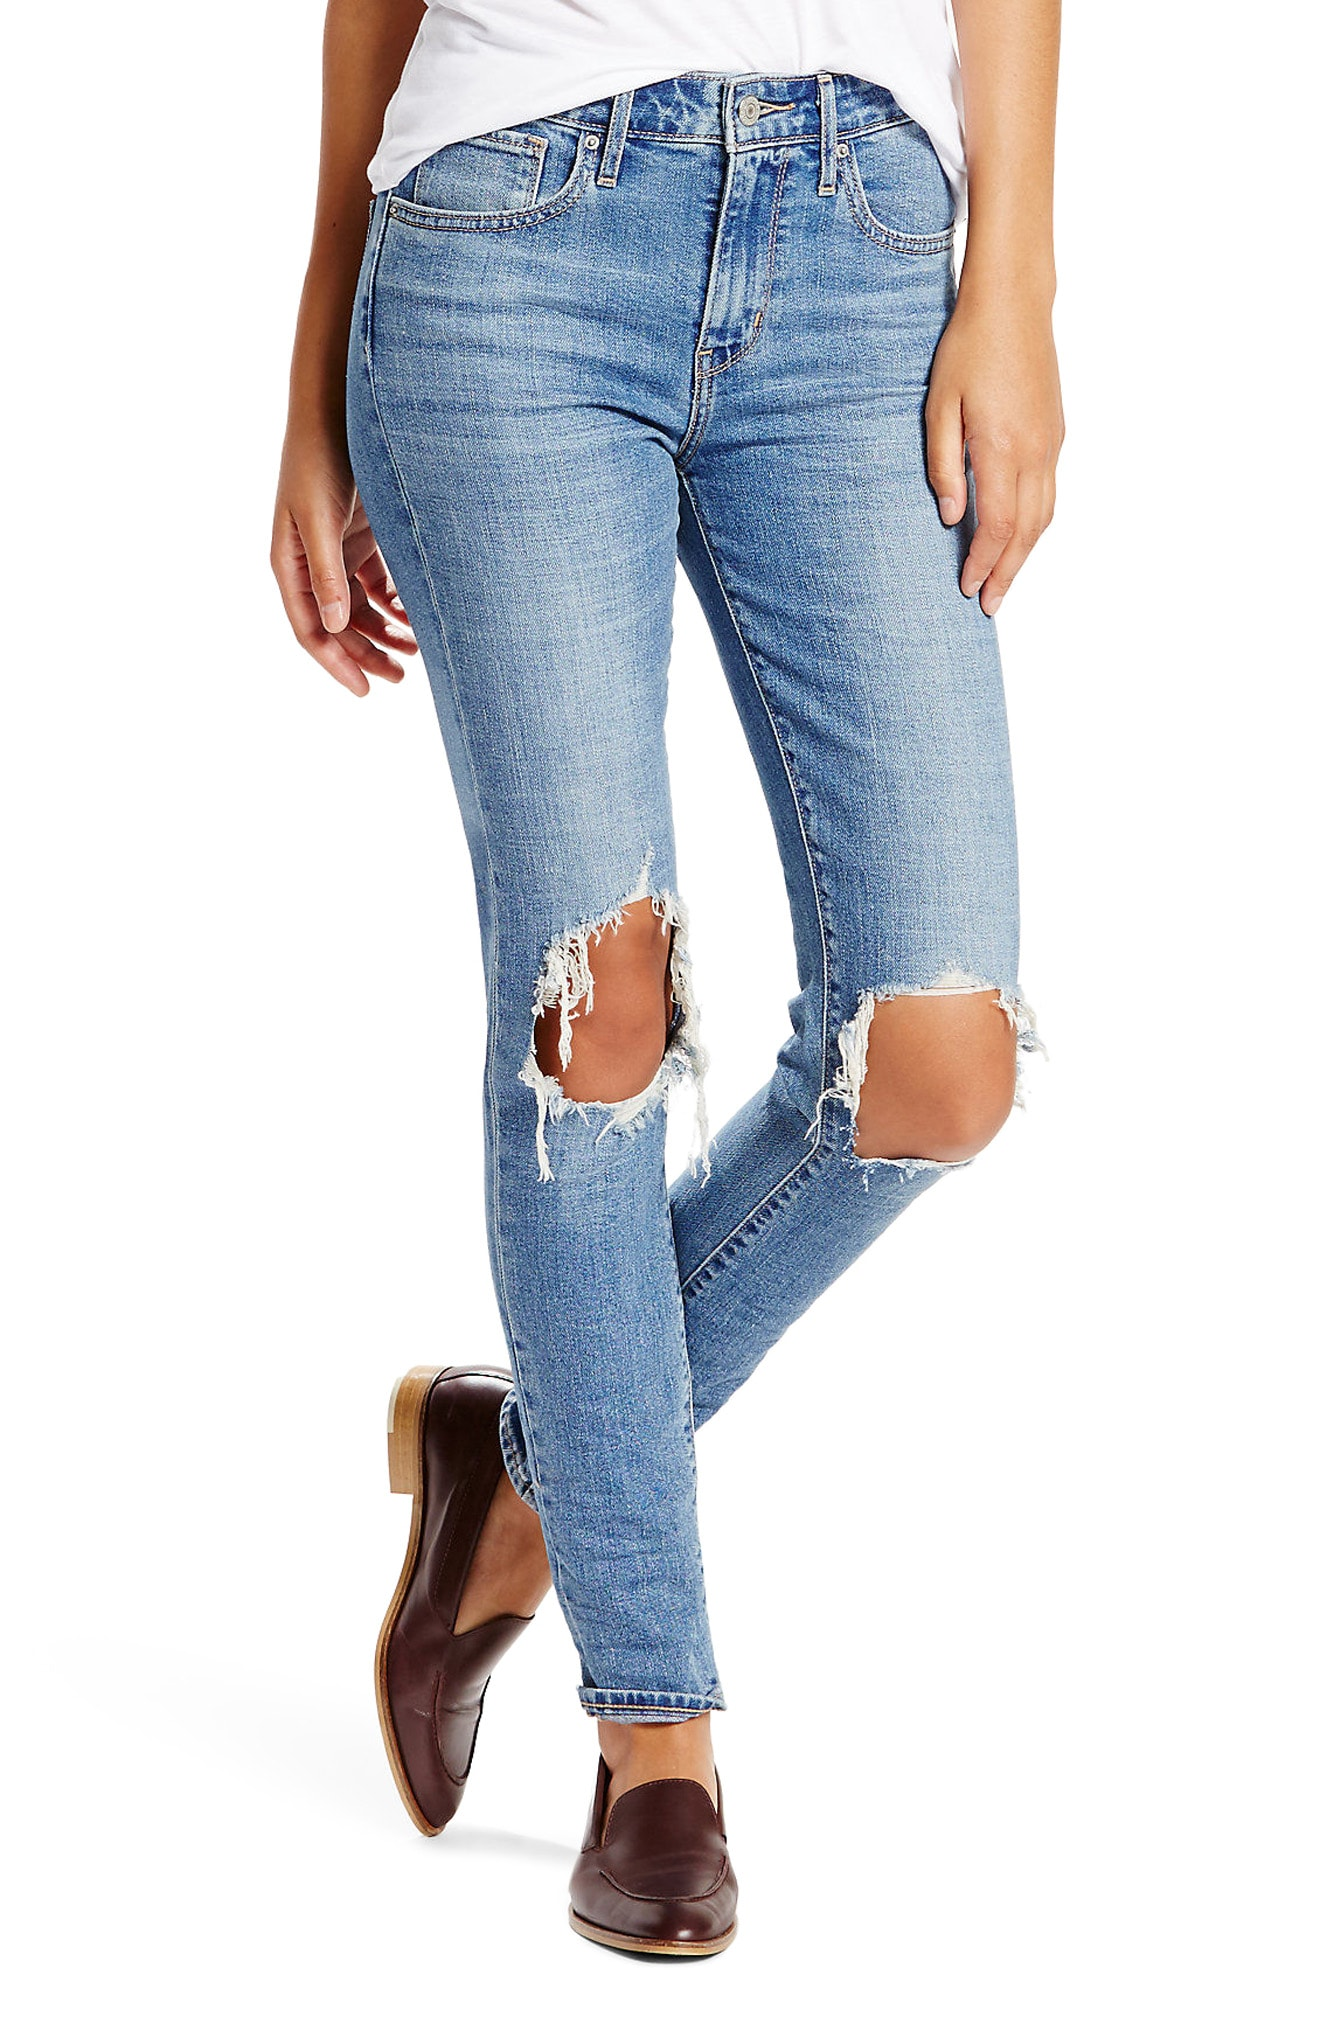 ripped jeans | Nordstrom